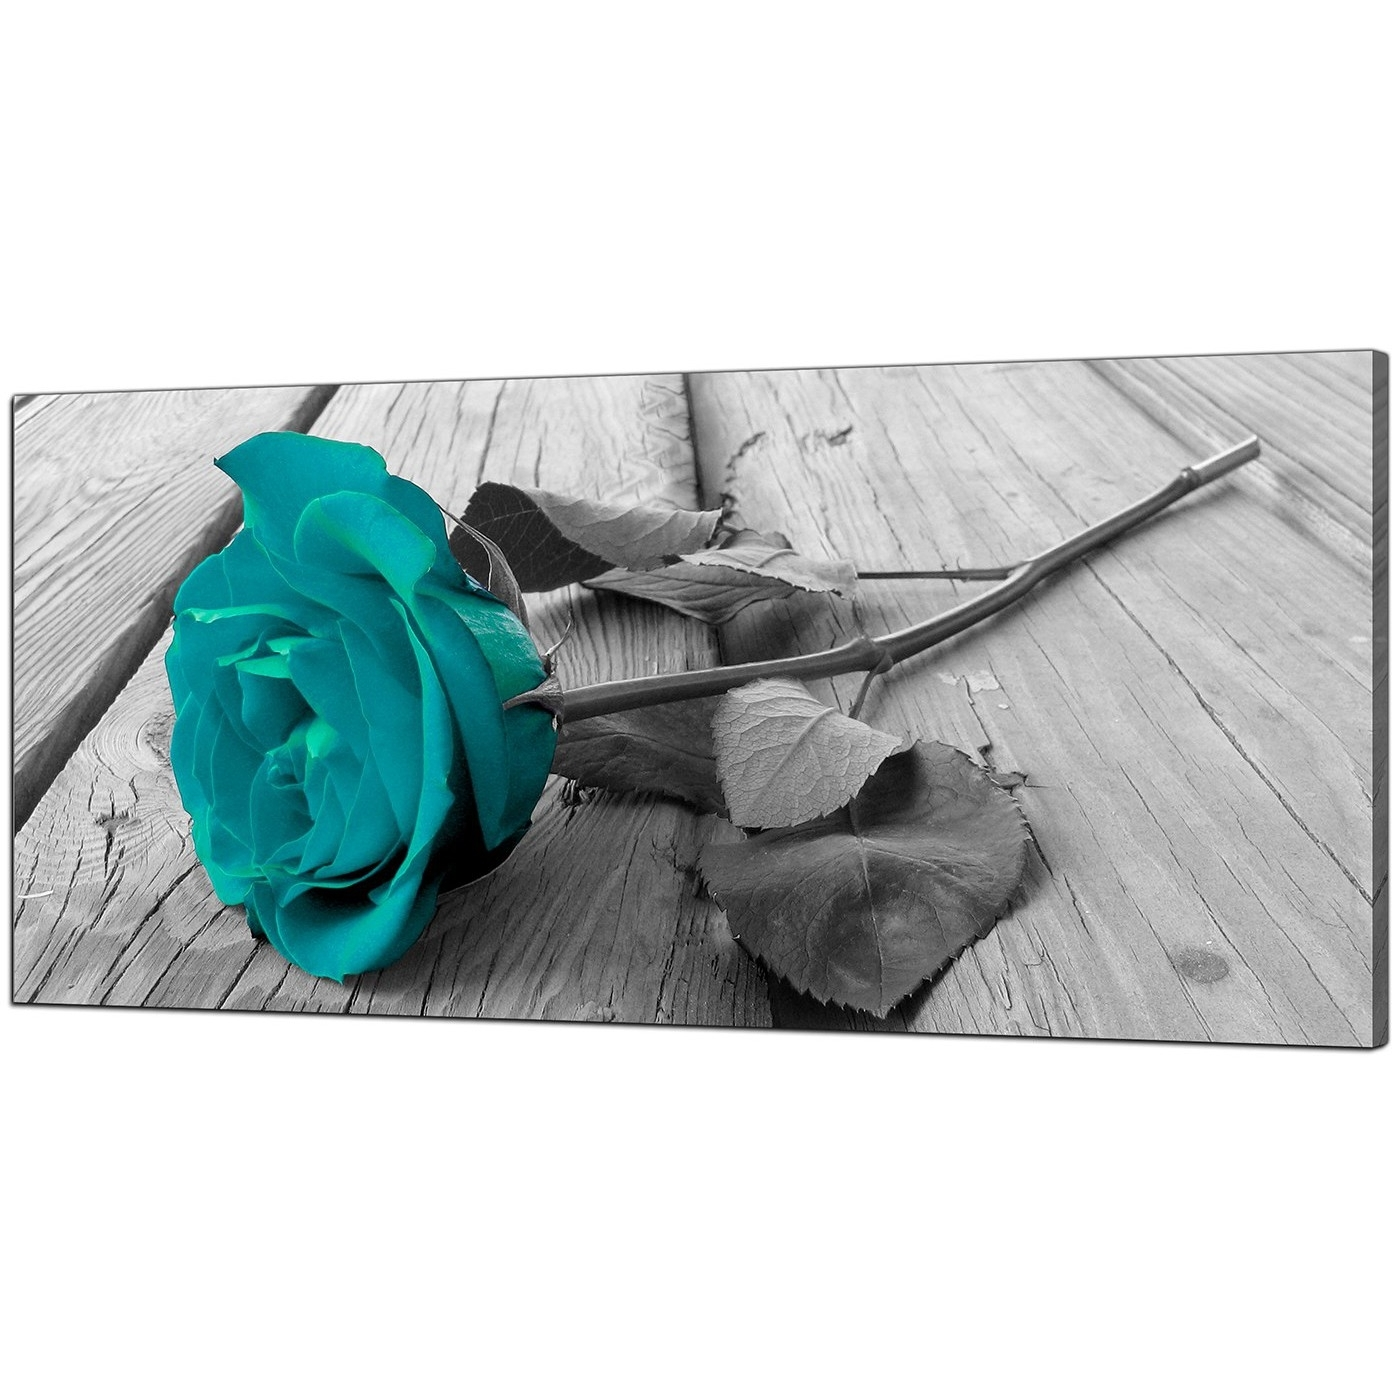 Fashionable Modern Black And White Canvas Wall Art Of A Teal Rose Flower For Teal Flower Canvas Wall Art (View 5 of 15)